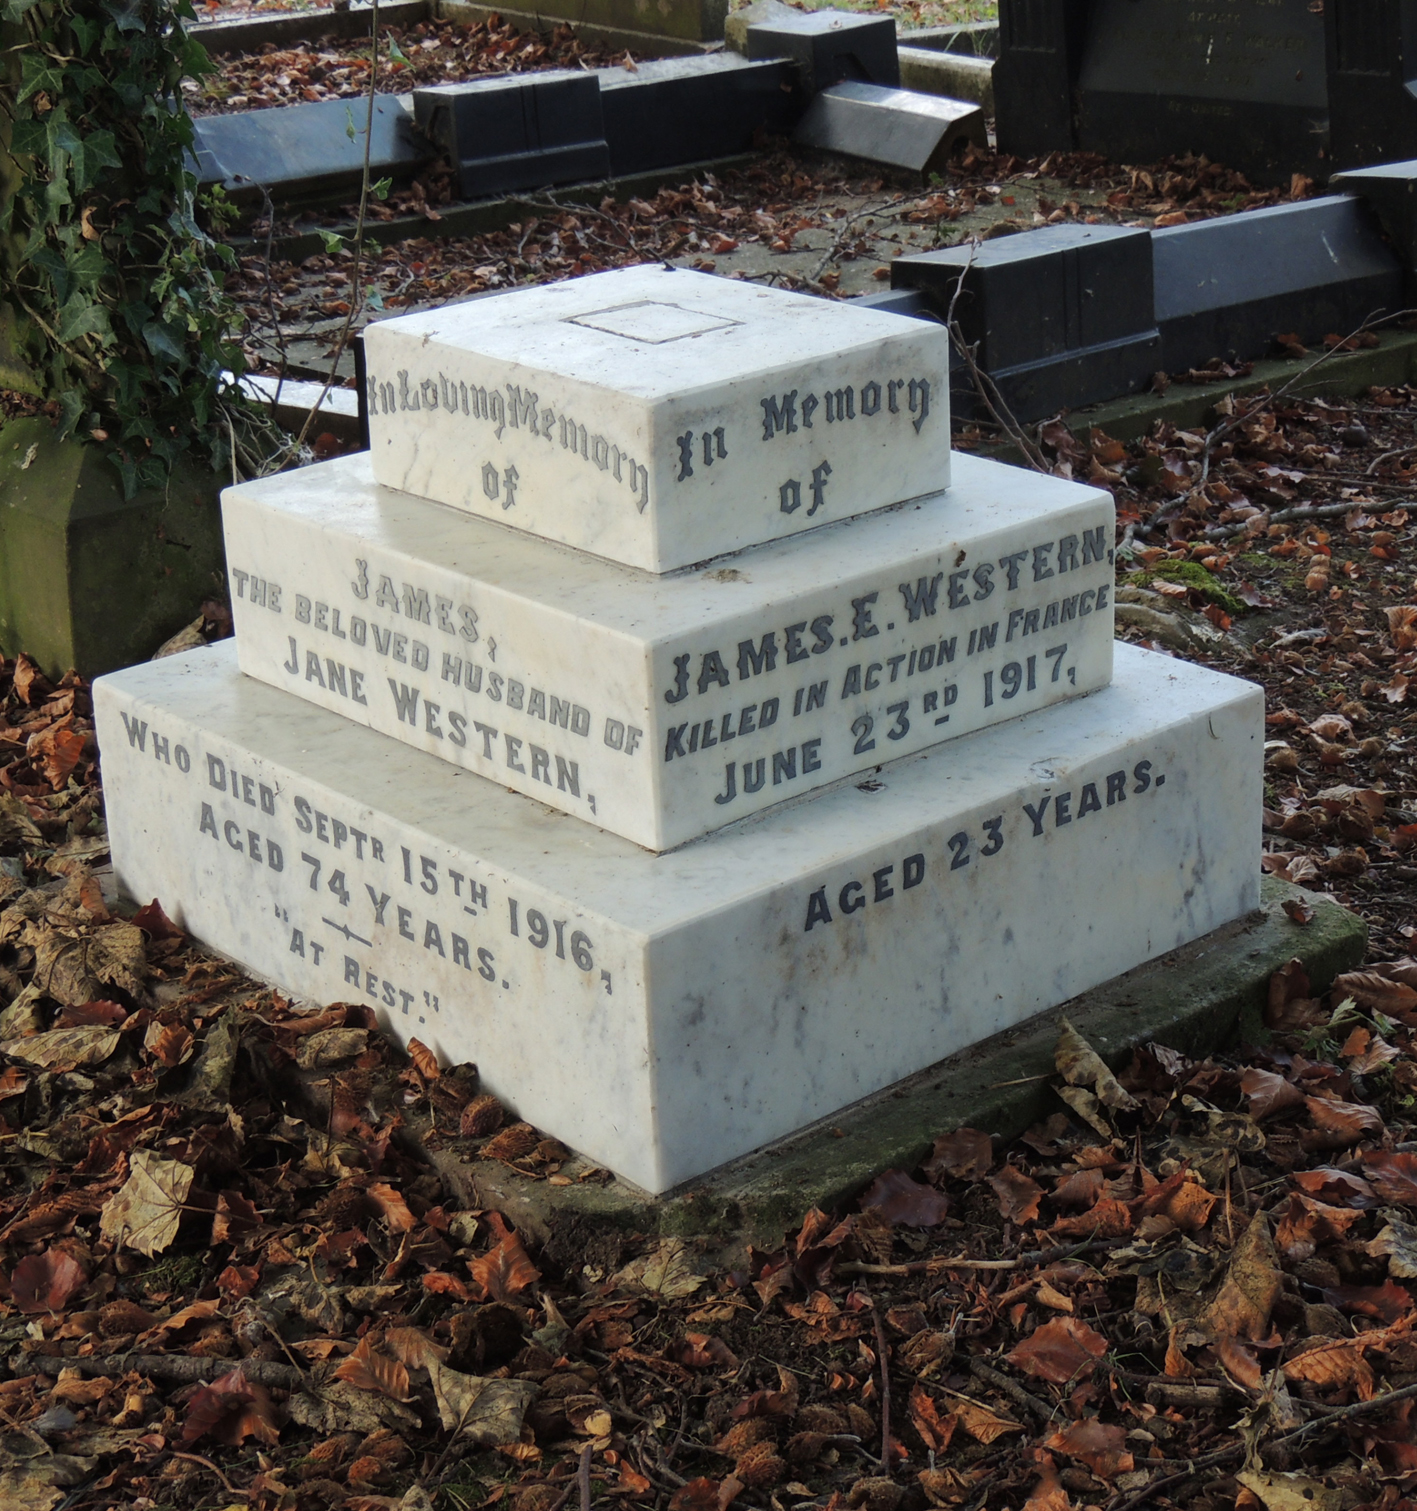 Private James Edward Western's headstone after restoration